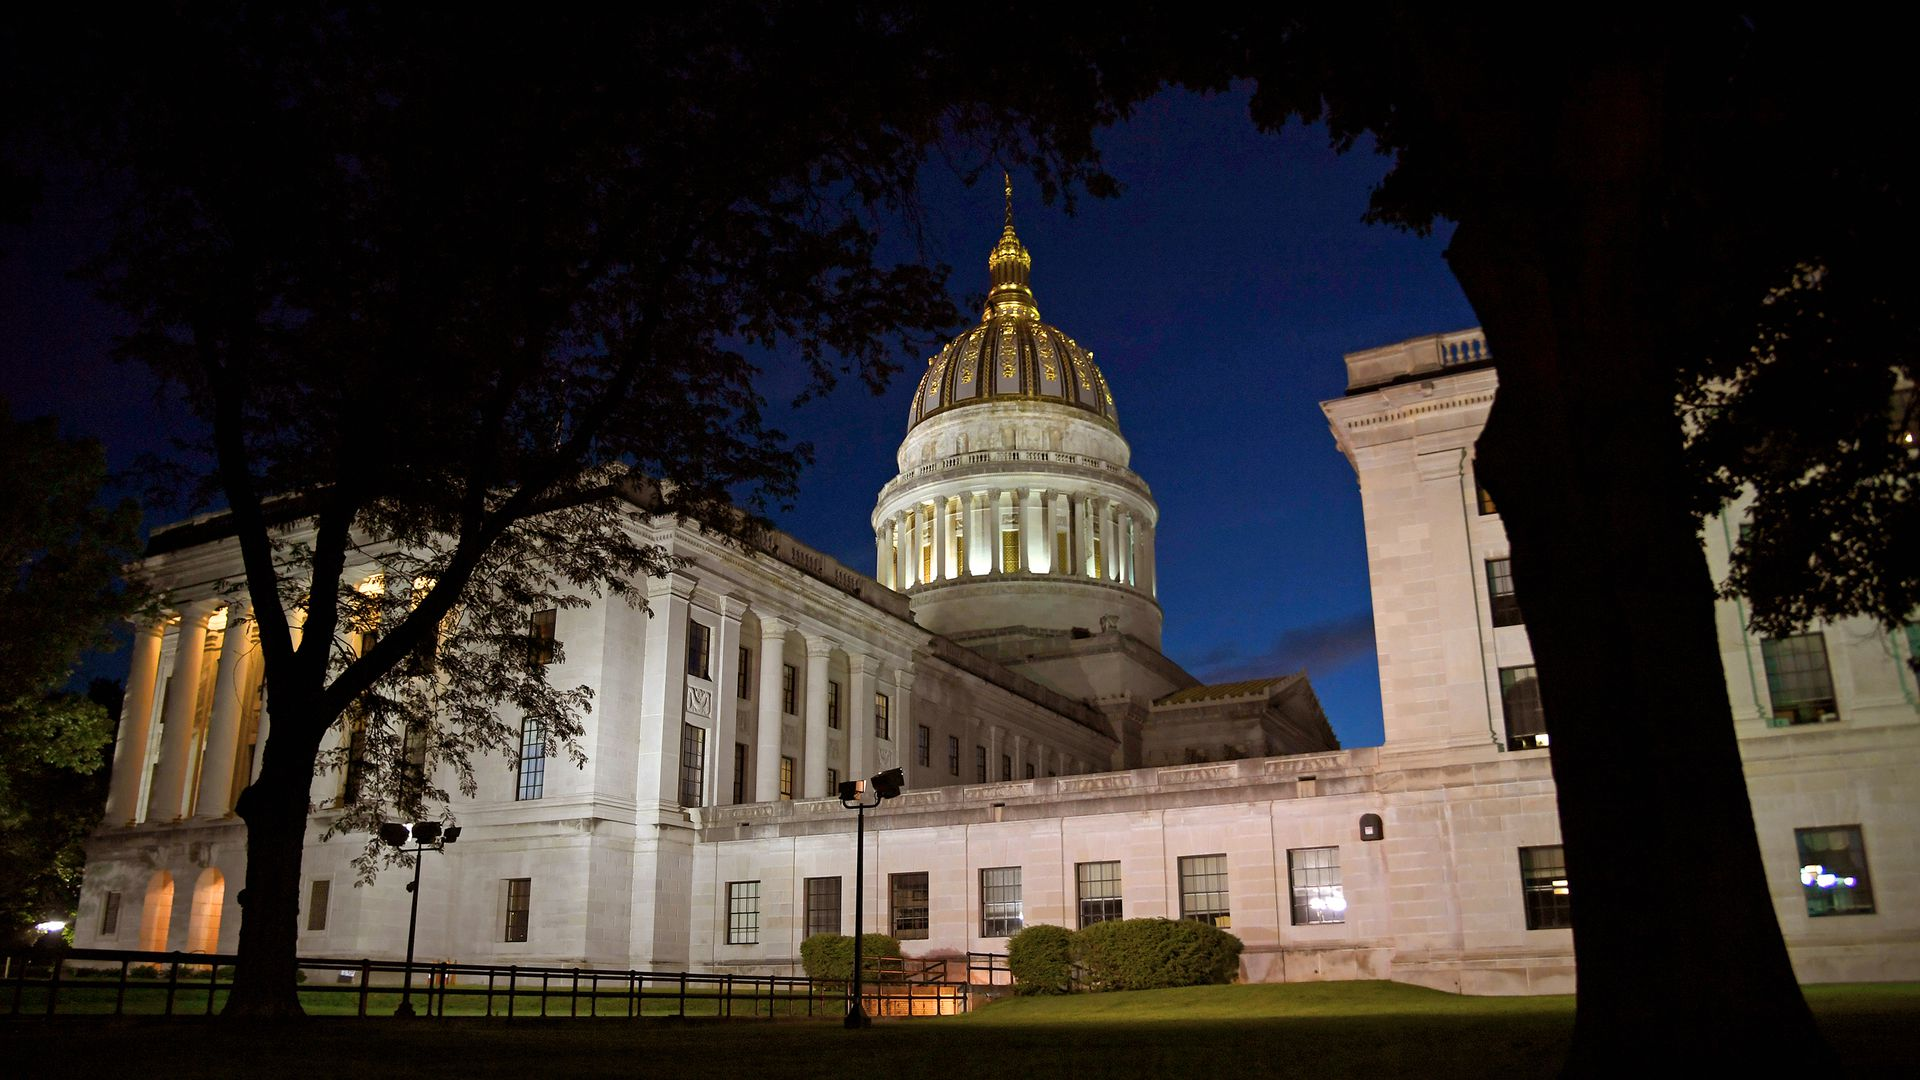 West Virginia State Capitol Building in Charleston, West Virginia